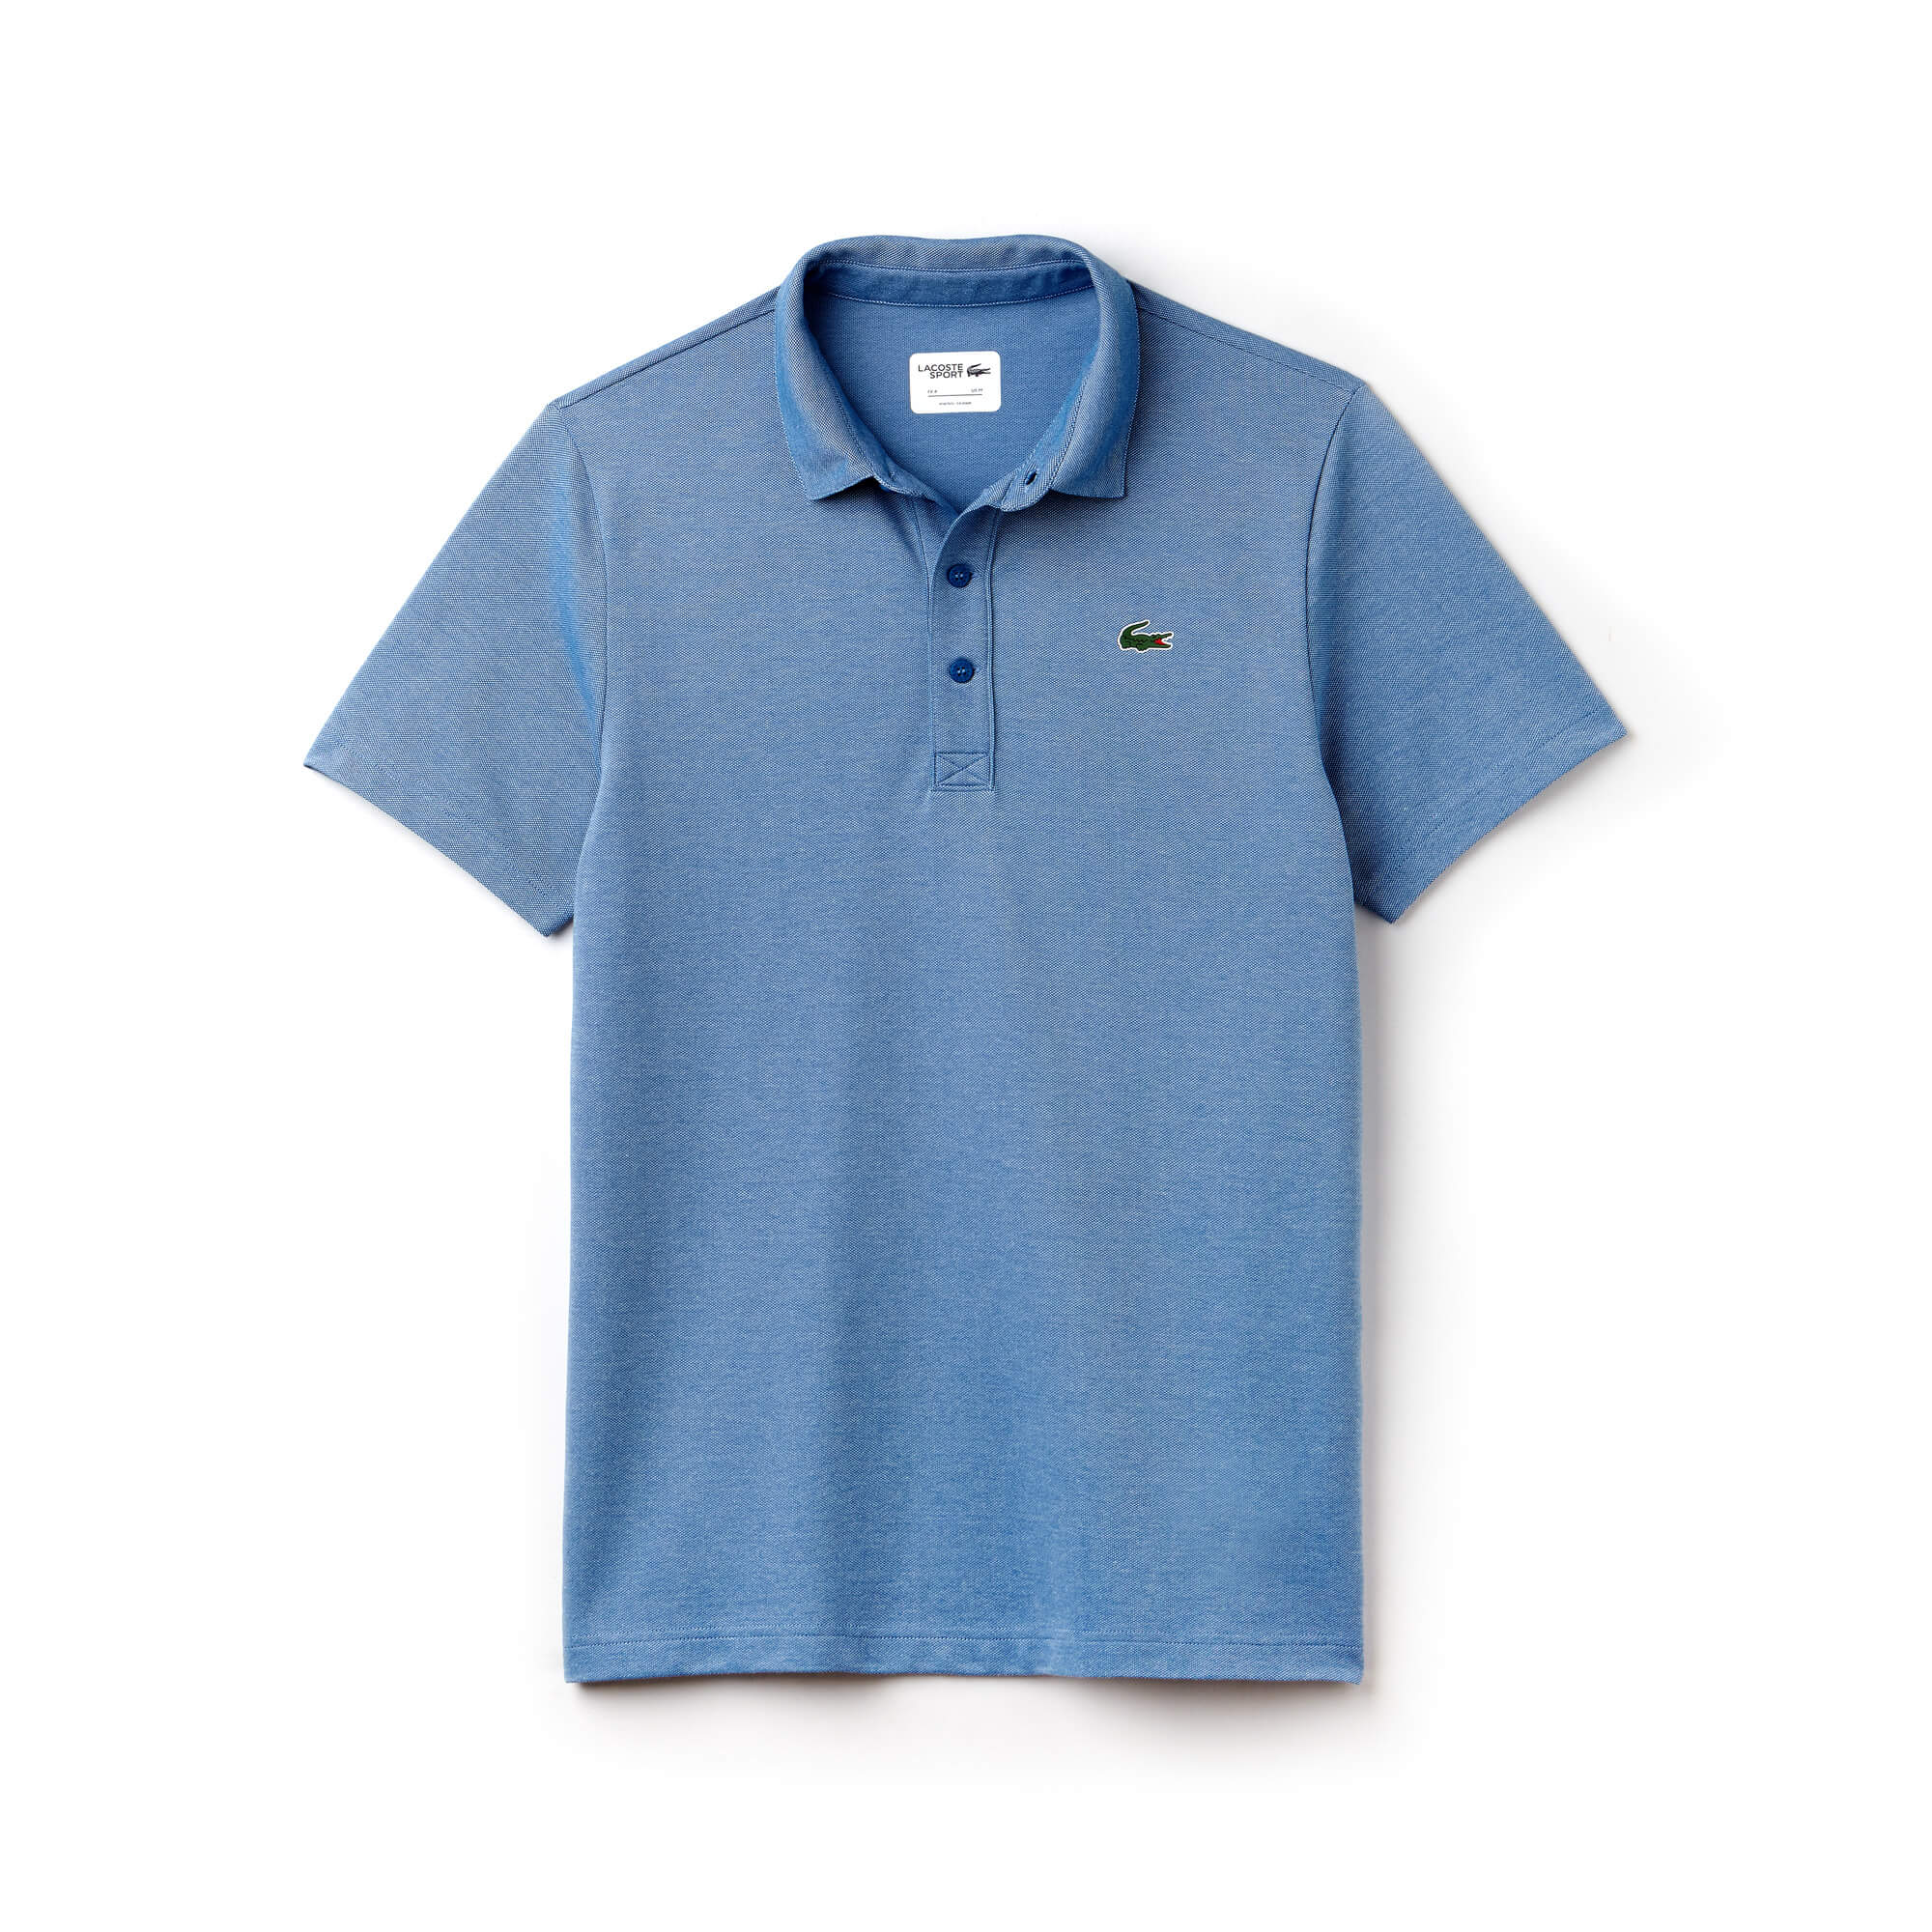 Men's Lacoste SPORT Bicolour Technical Jersey Golf Polo